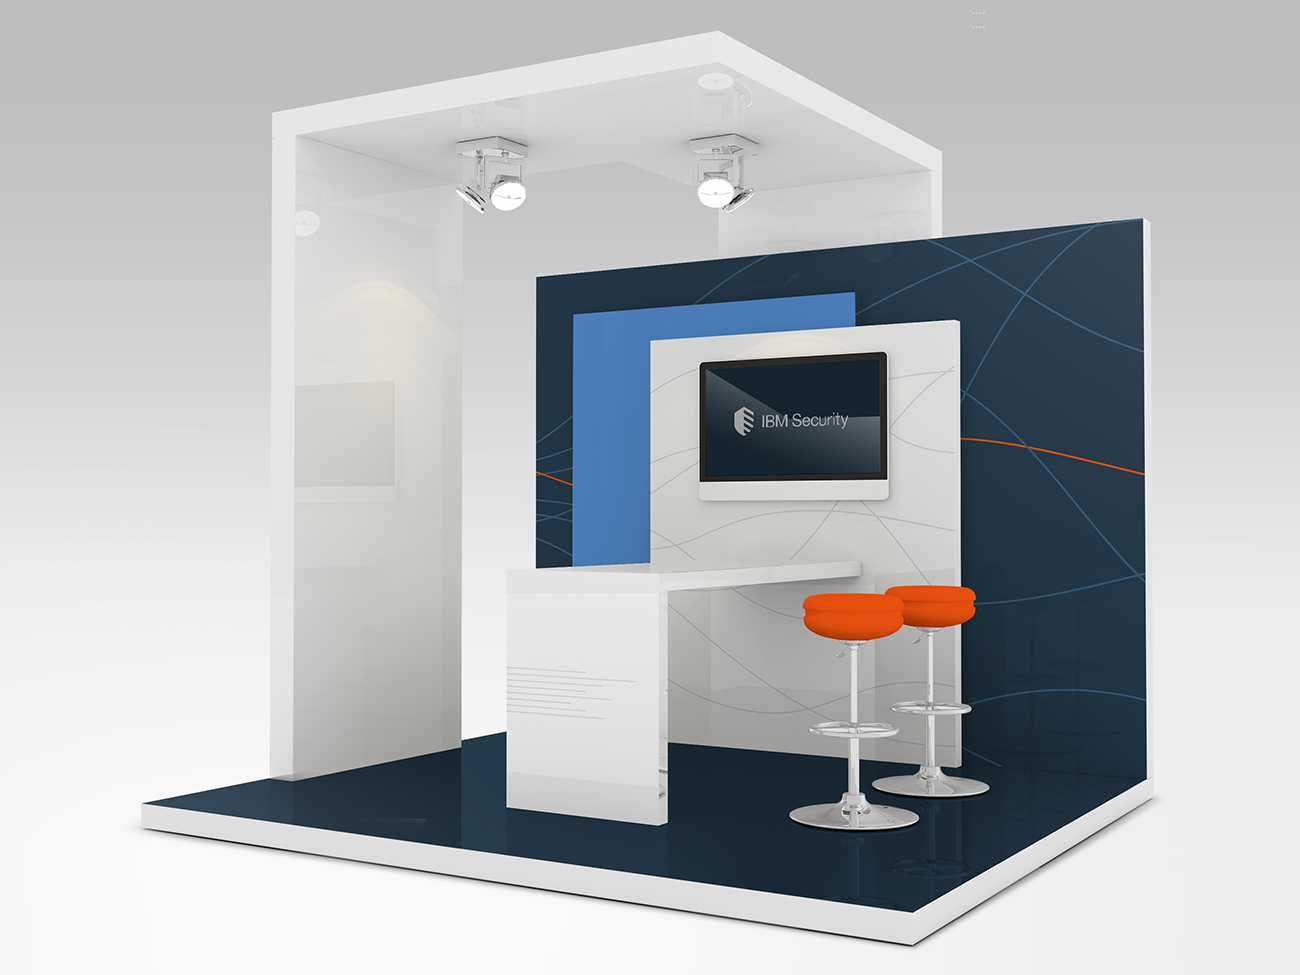 jk_IBM_Security_tradeshow_booth_Small